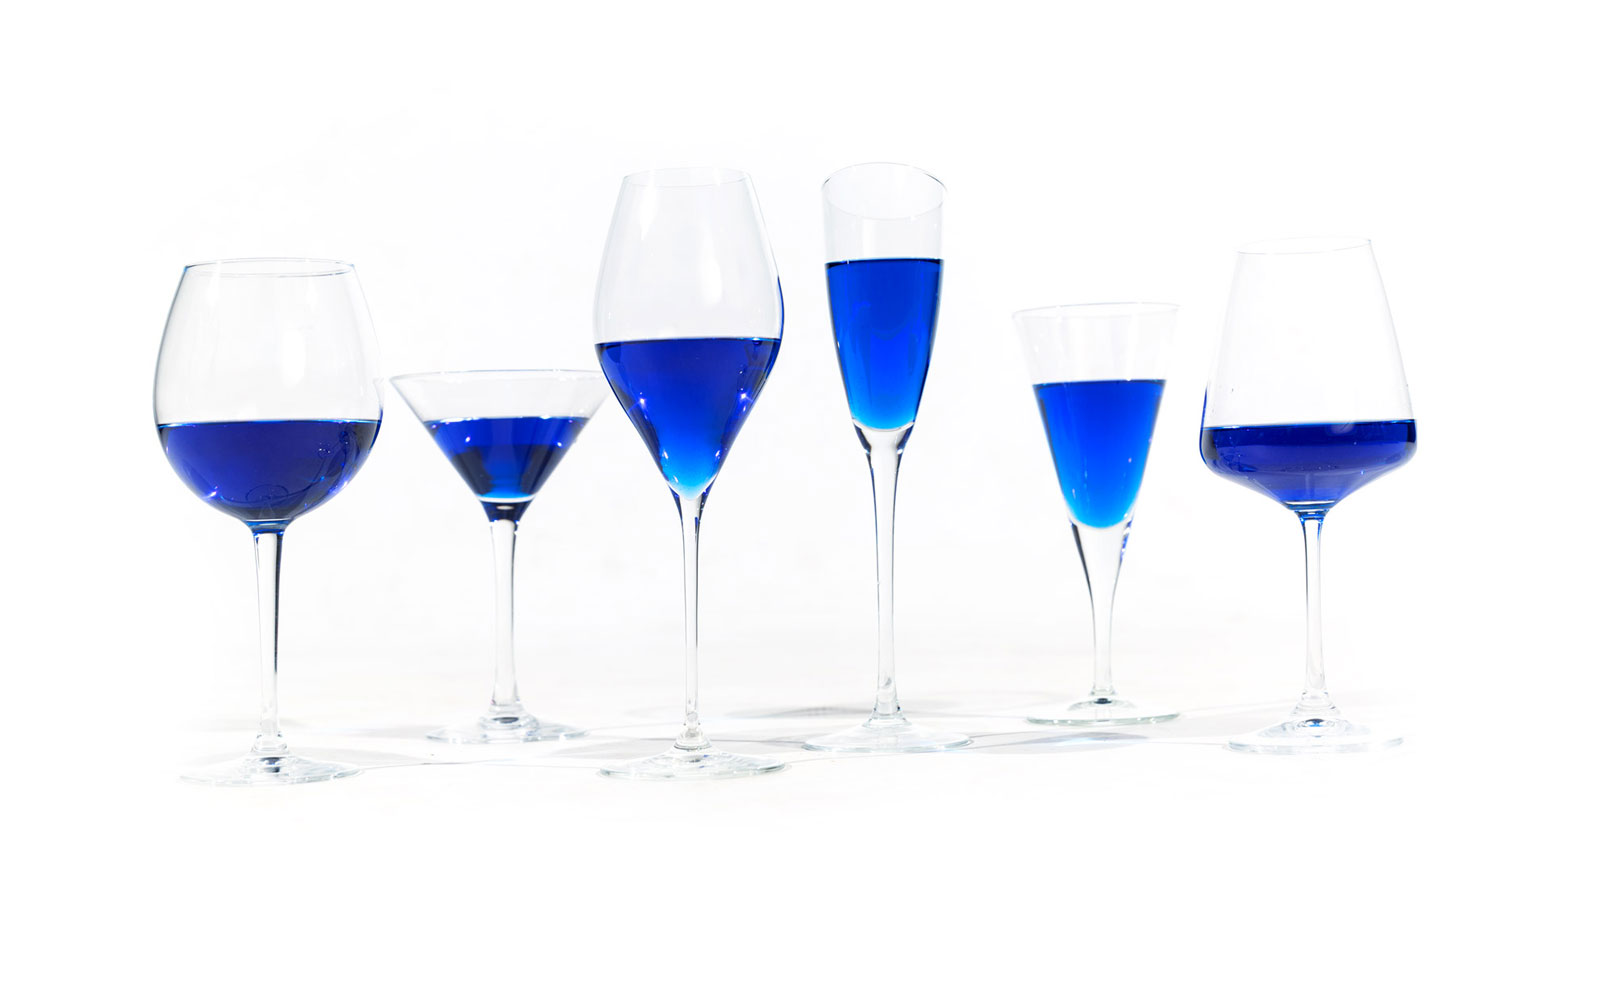 Where to Buy the Blue Wine Everyone is Talking About